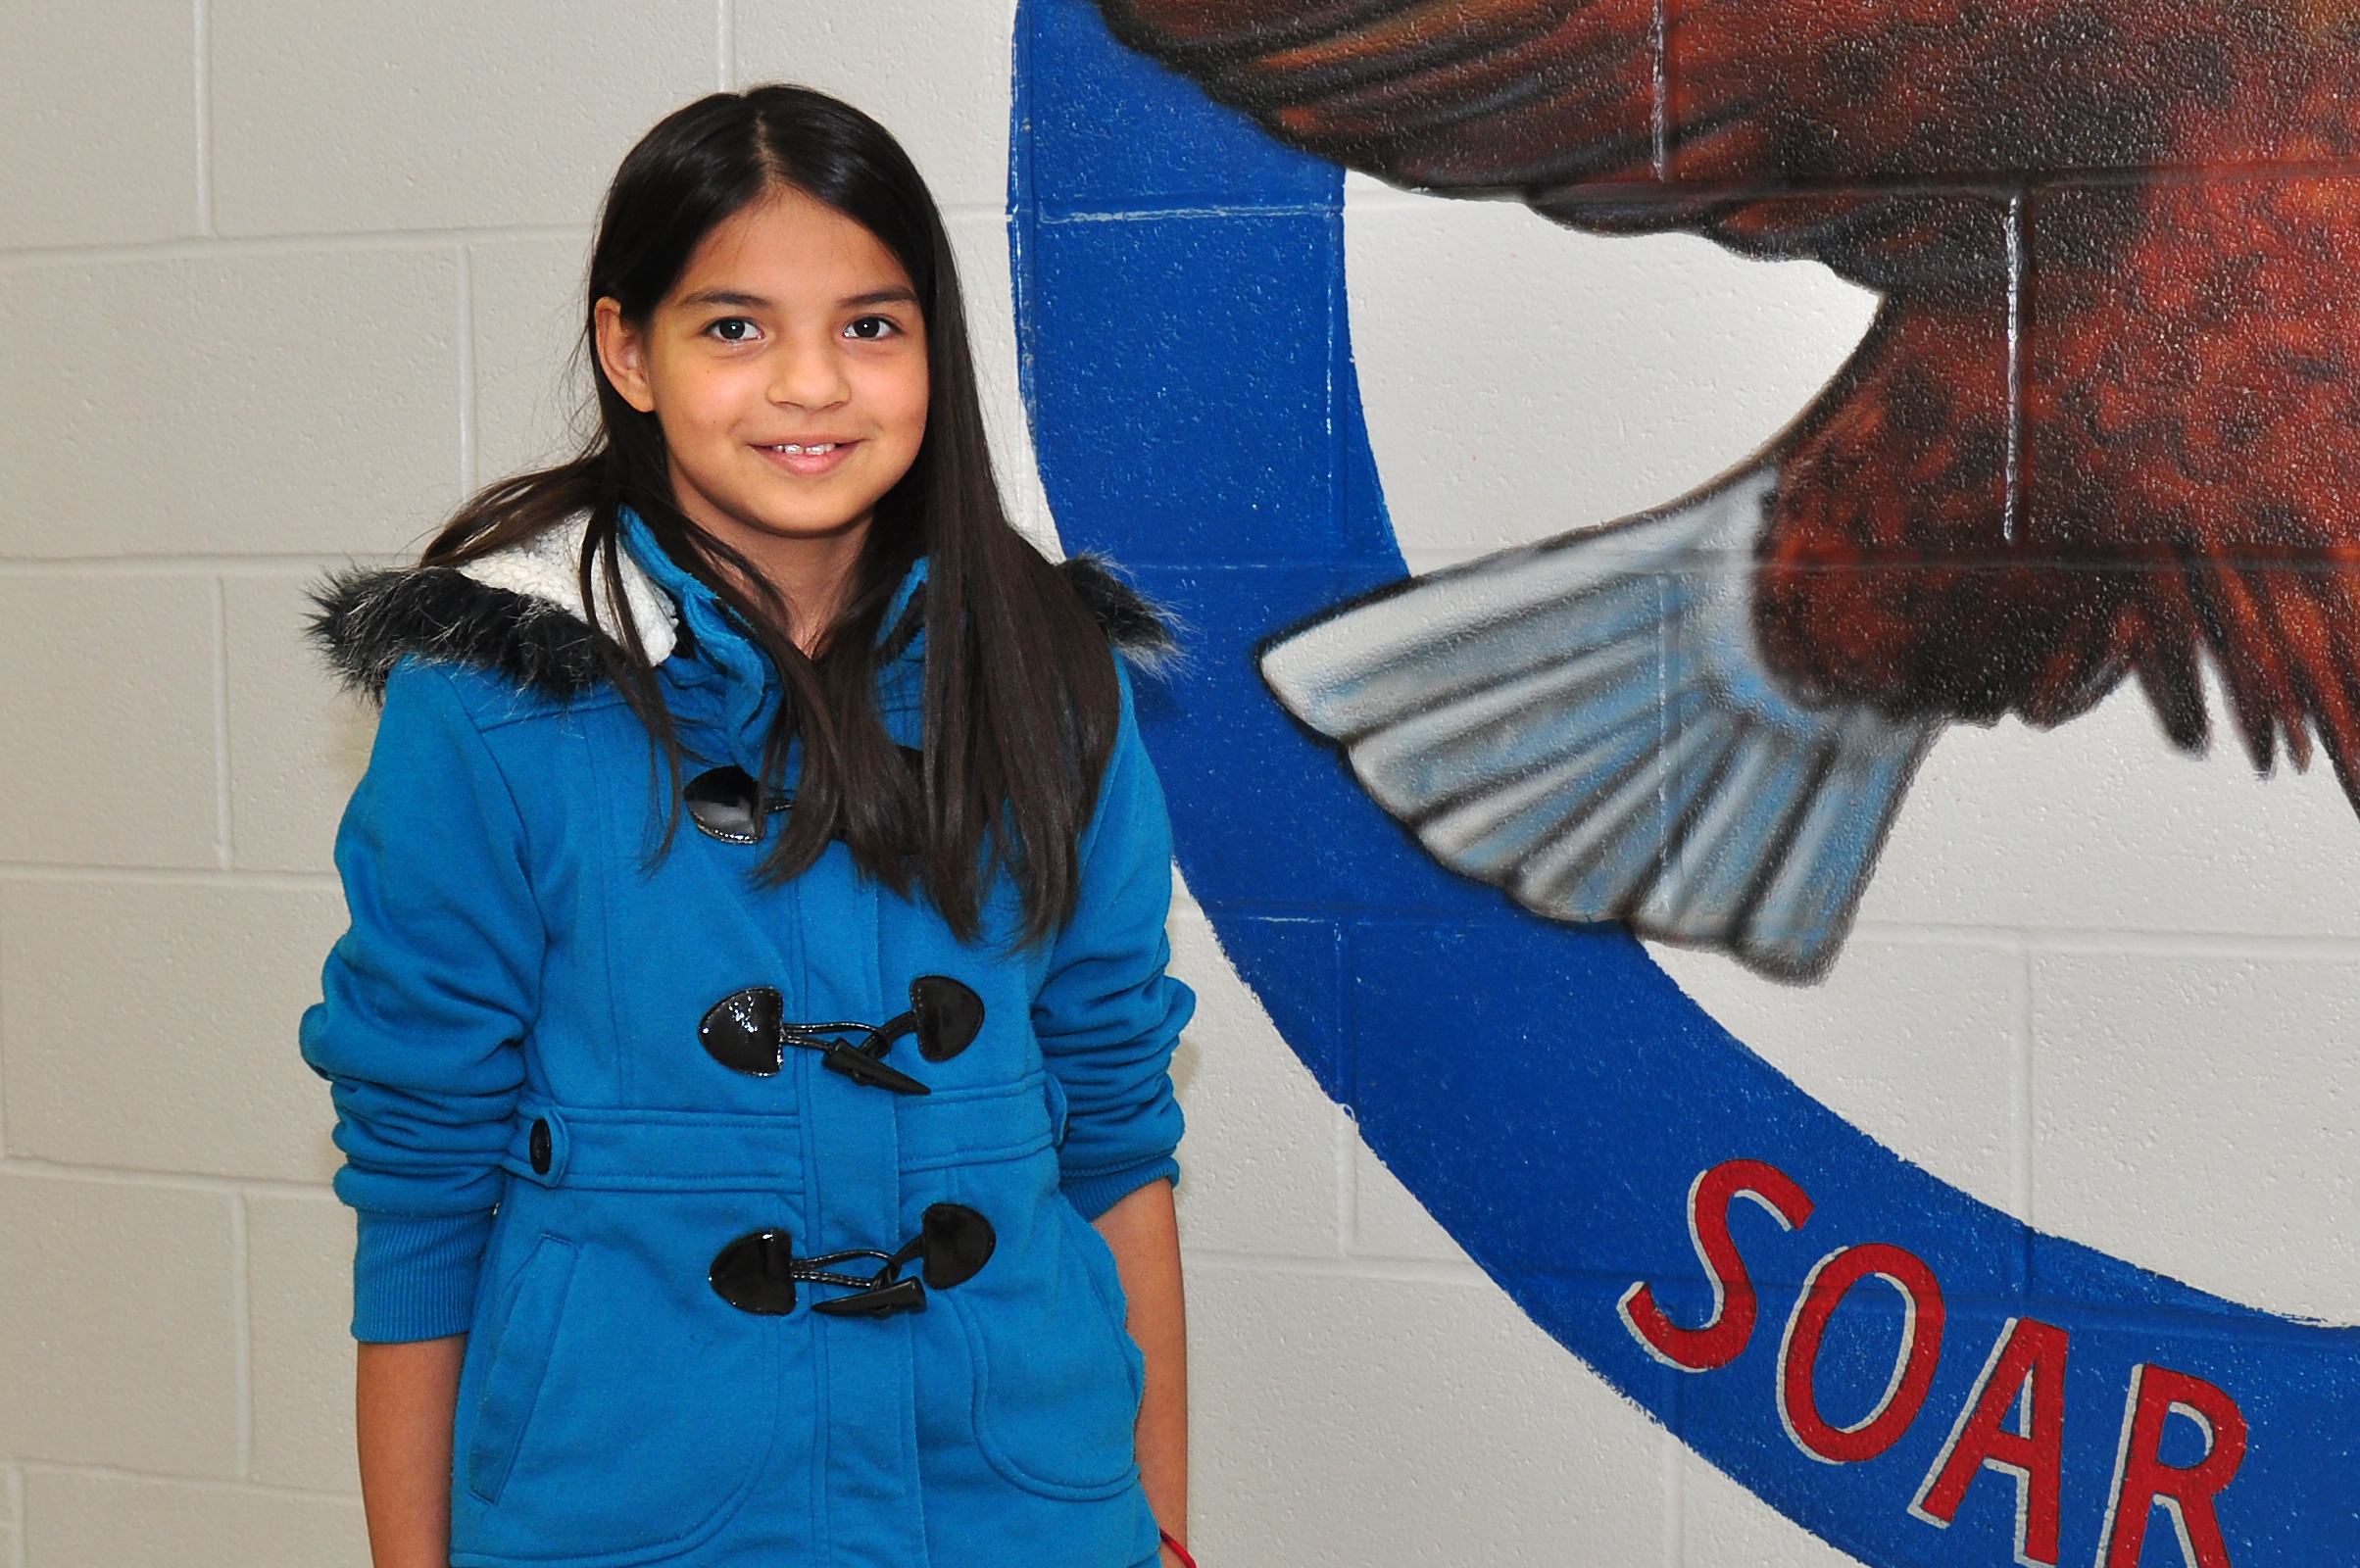 Student of the Week: Young philanthropist gives back to the community